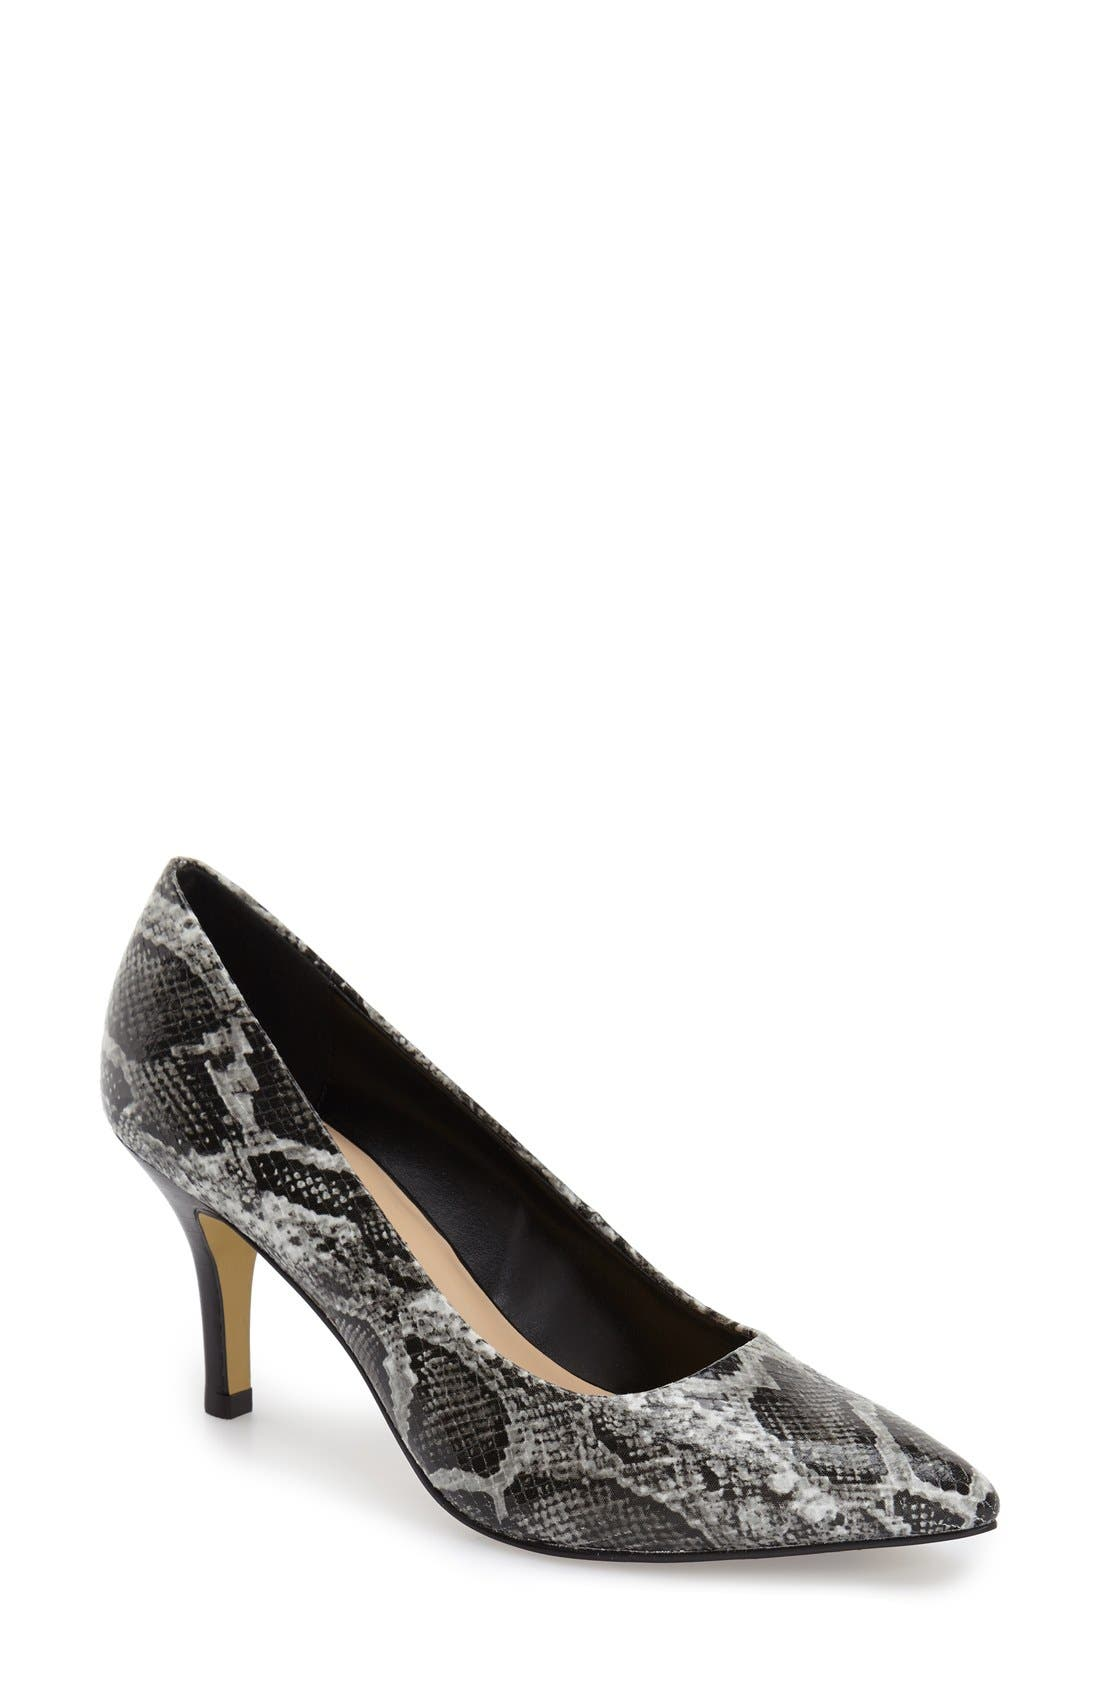 'Define' Pointy Toe Pump,                         Main,                         color, 013